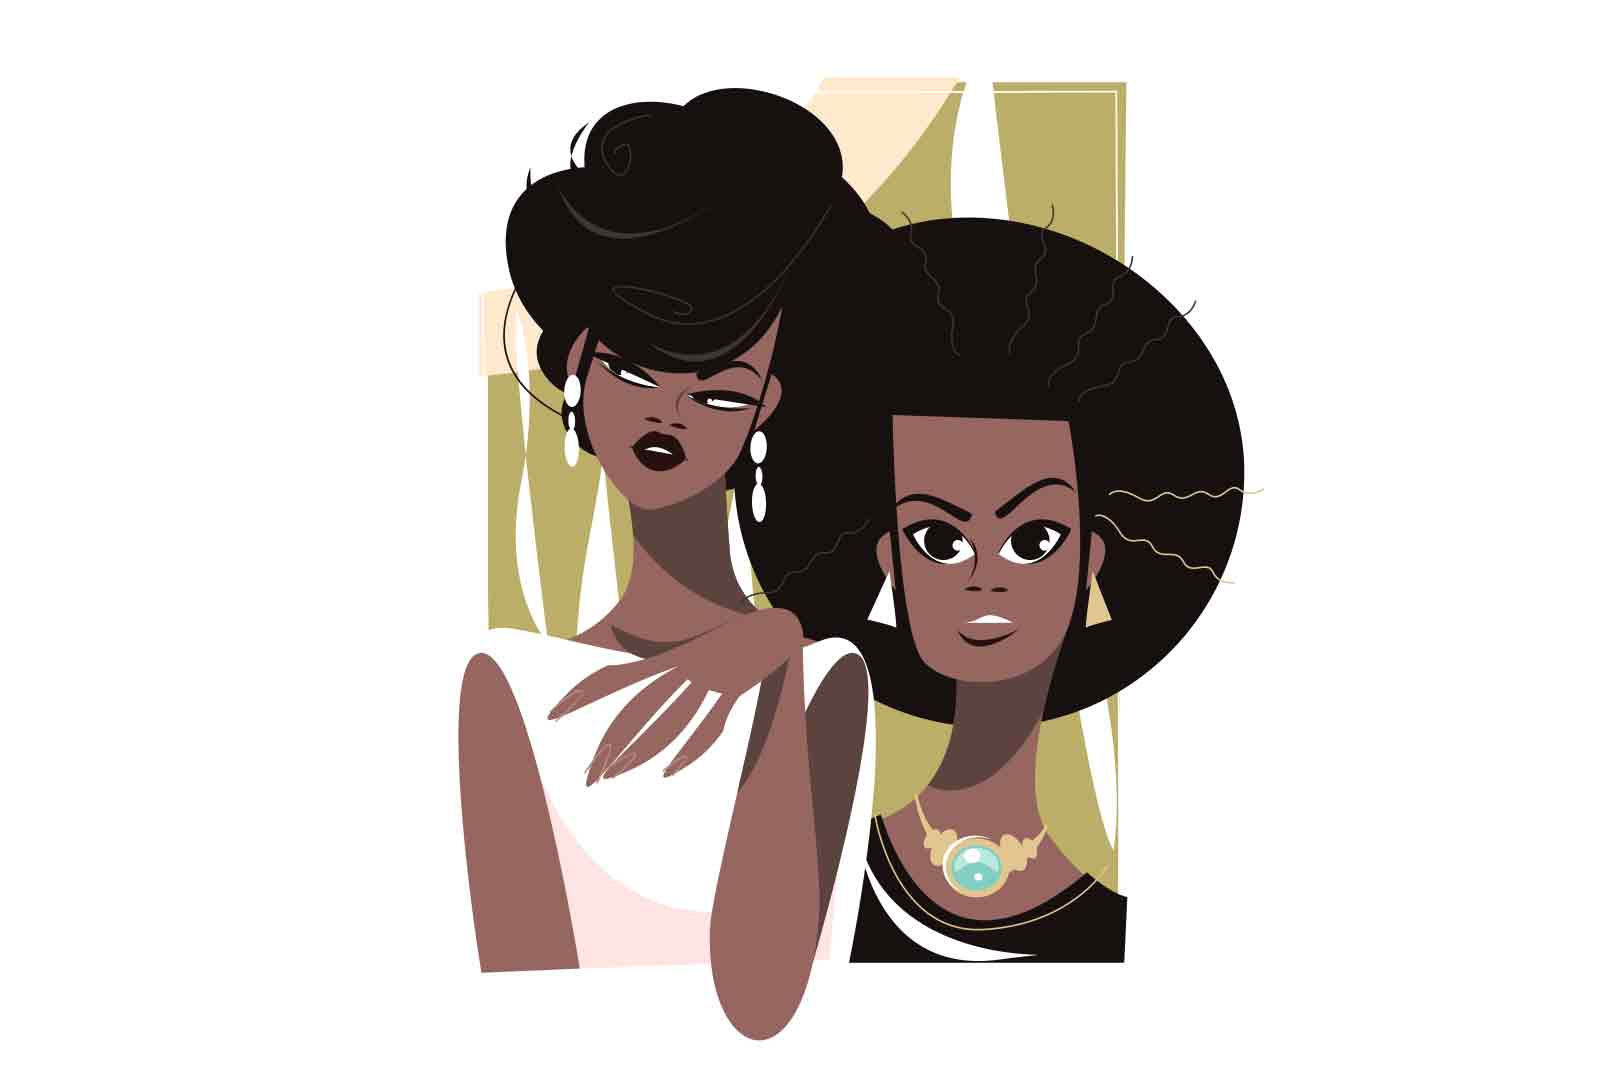 Afro girls with fashion hairstyles vector illustration. Young black women well dressed with accessories flat style. Fashion, trend concept